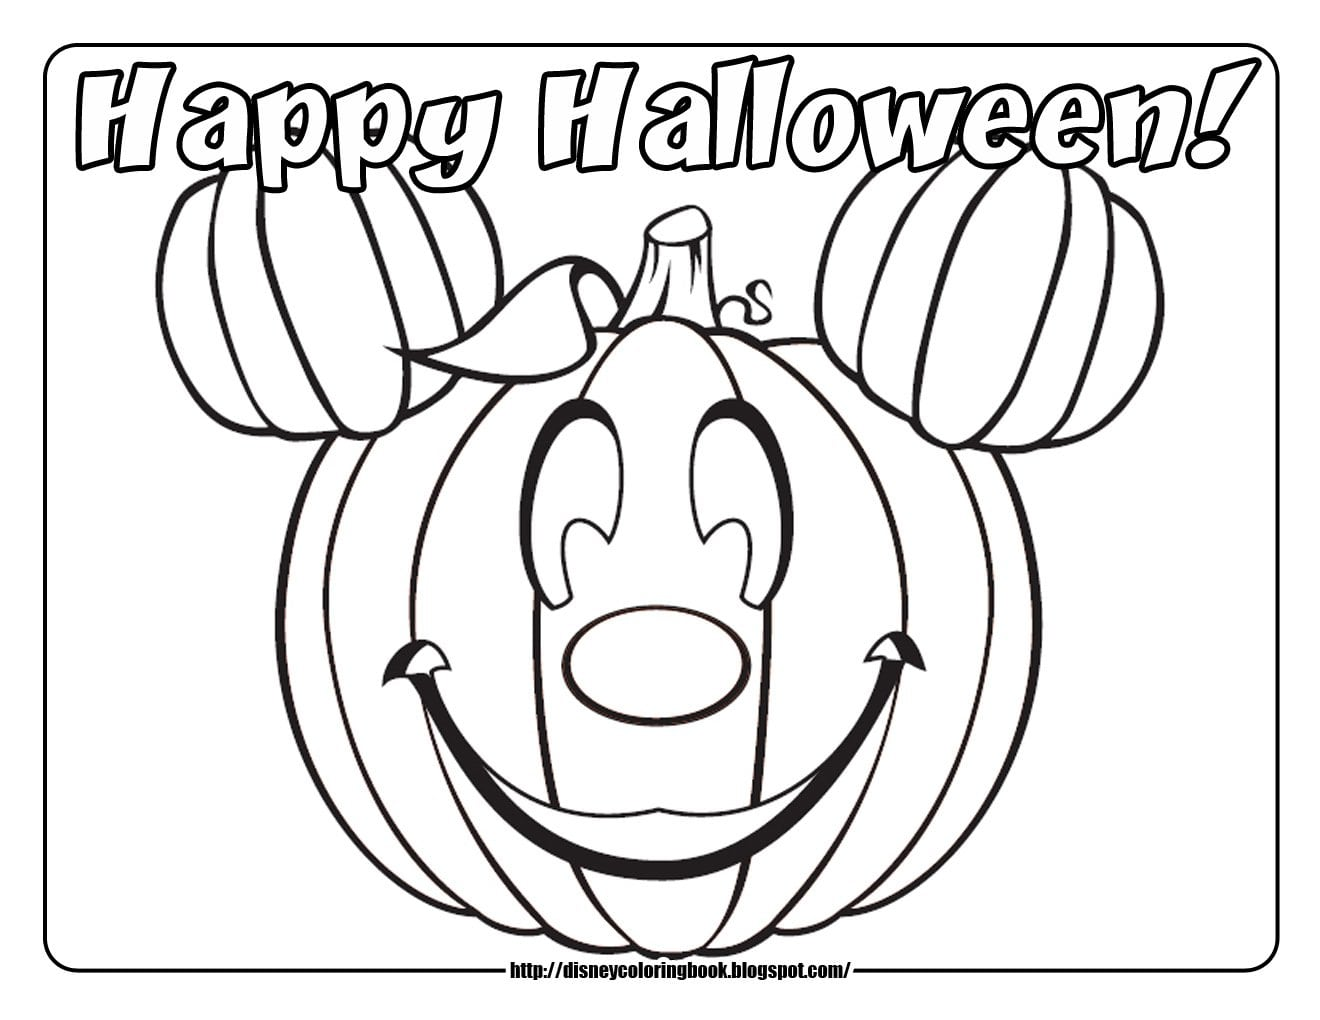 13 Halloween Coloring Pages To Print Out For Free, Free Coloring